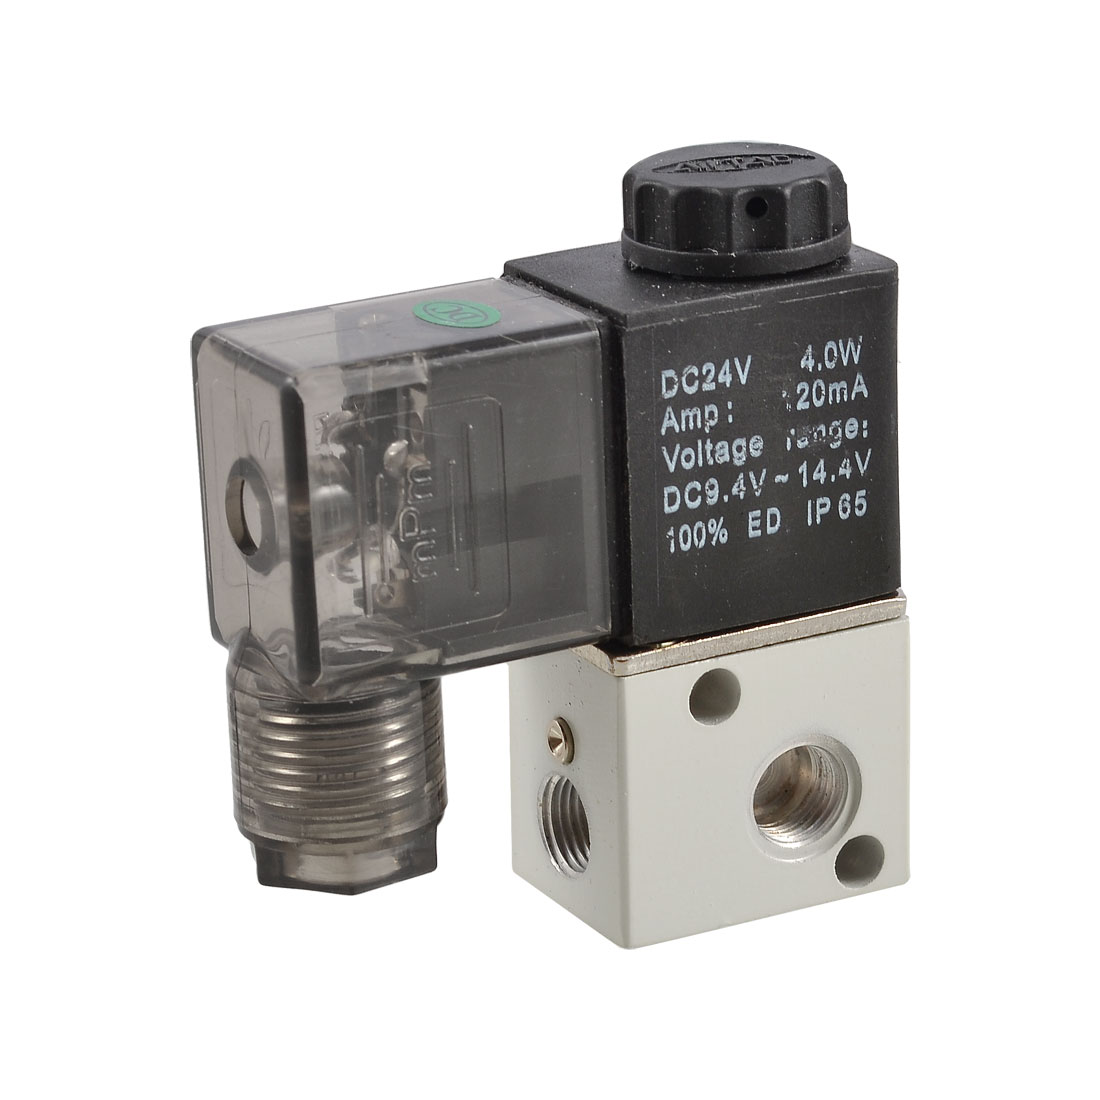 3V1-06 4W 120mA DC 24V Two Position Three Way Pneumatic Solenoid Valve